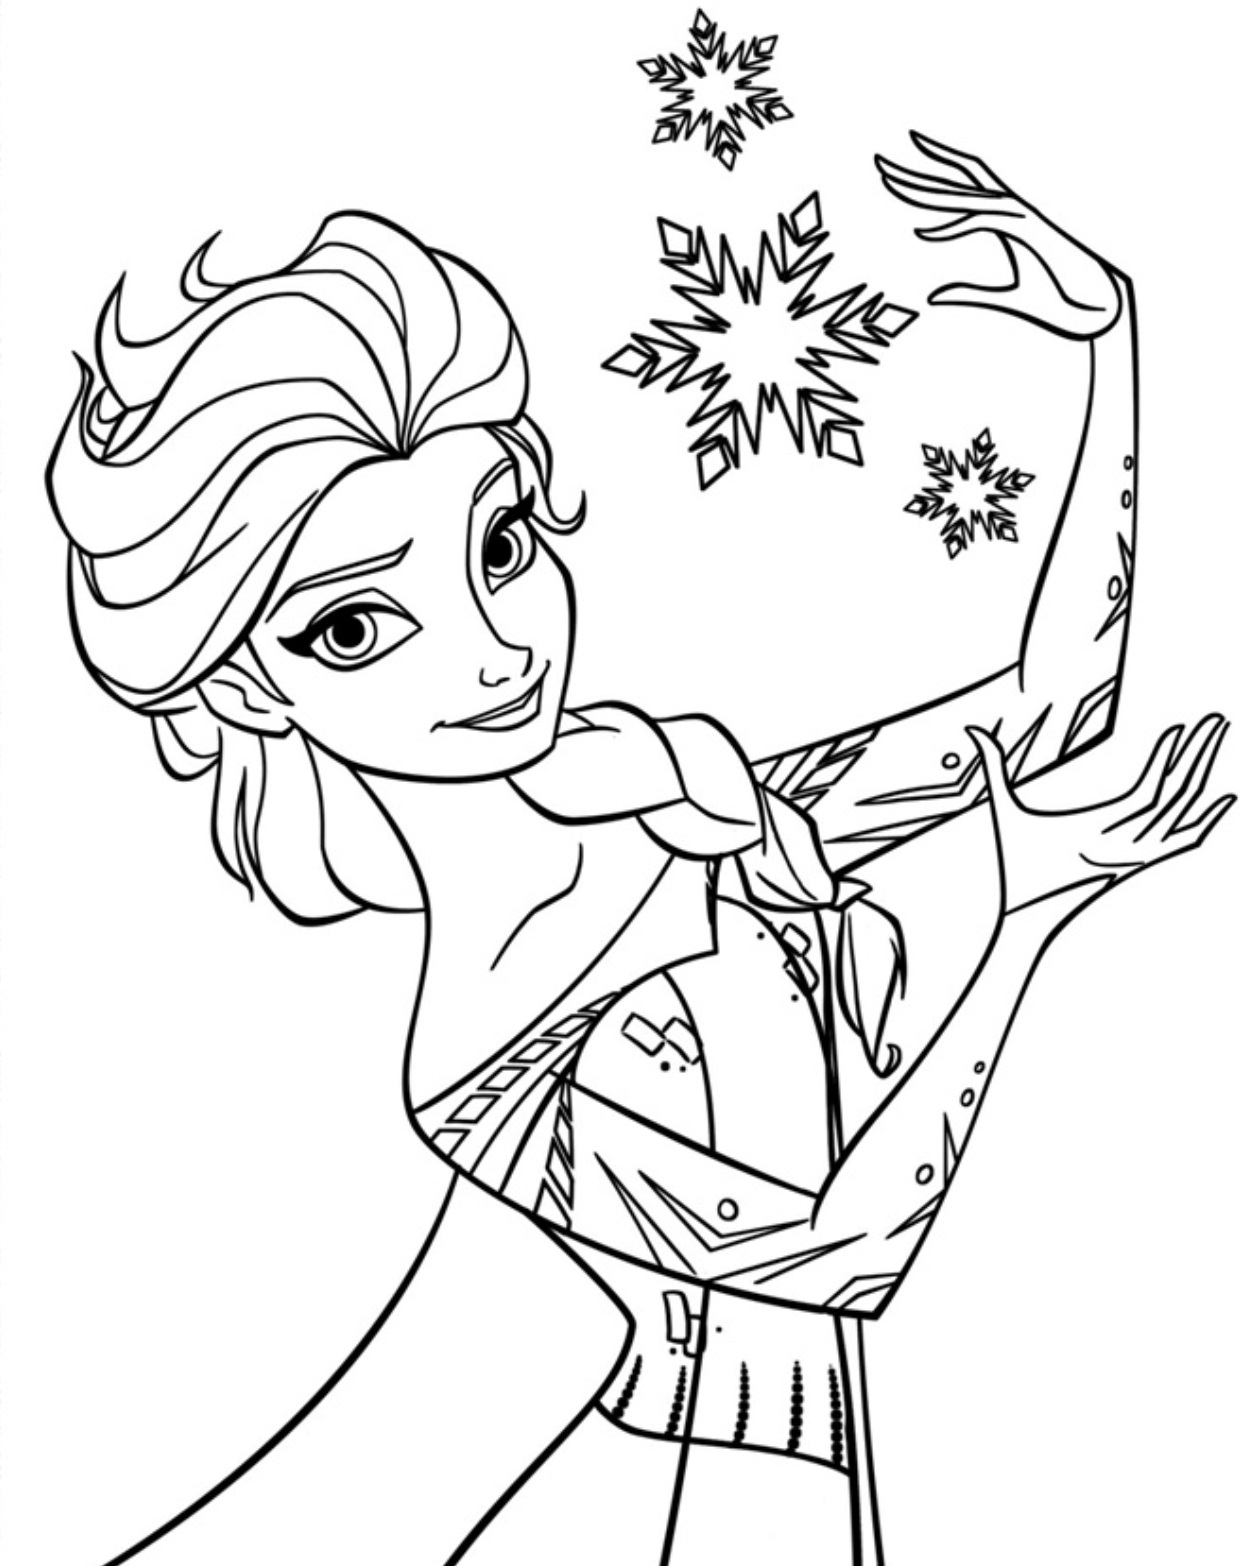 free printable elsa coloring pages free printable elsa coloring pages for kids best coloring elsa pages printable free